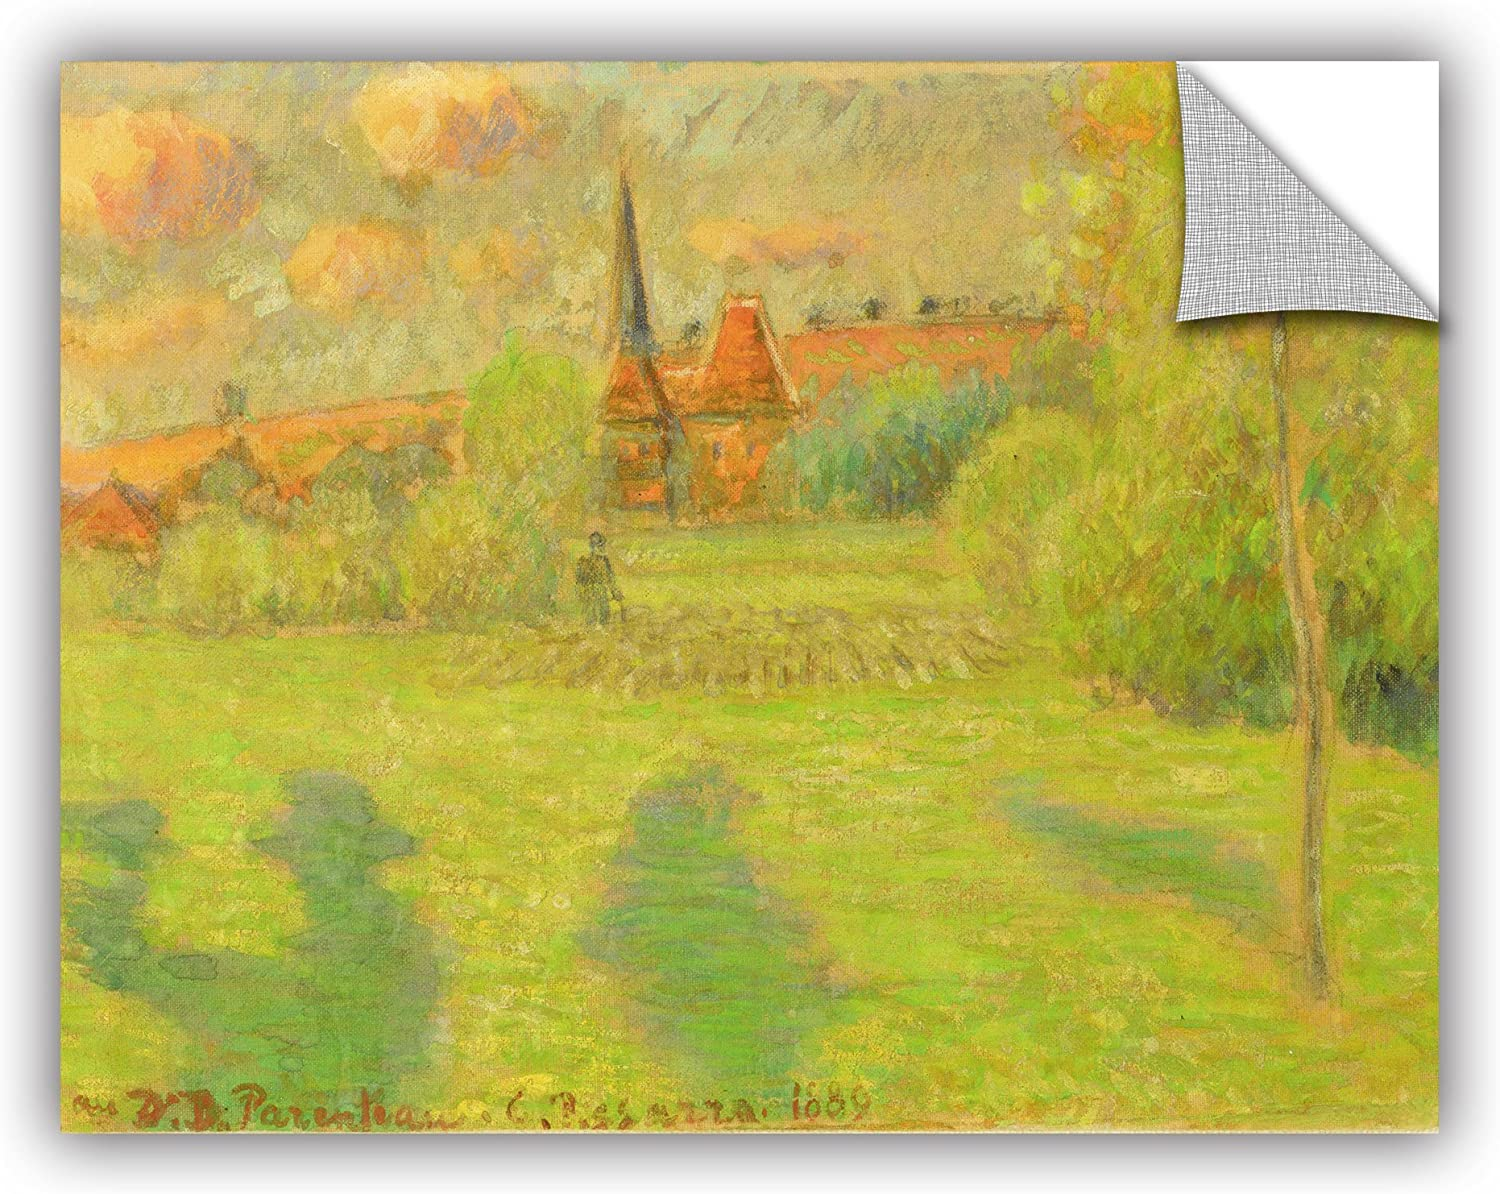 ArtWall Camille Pissarro's The Shepard and The Church of Eragny 1889 Removable Wall Art Mural, 14x18-Inch